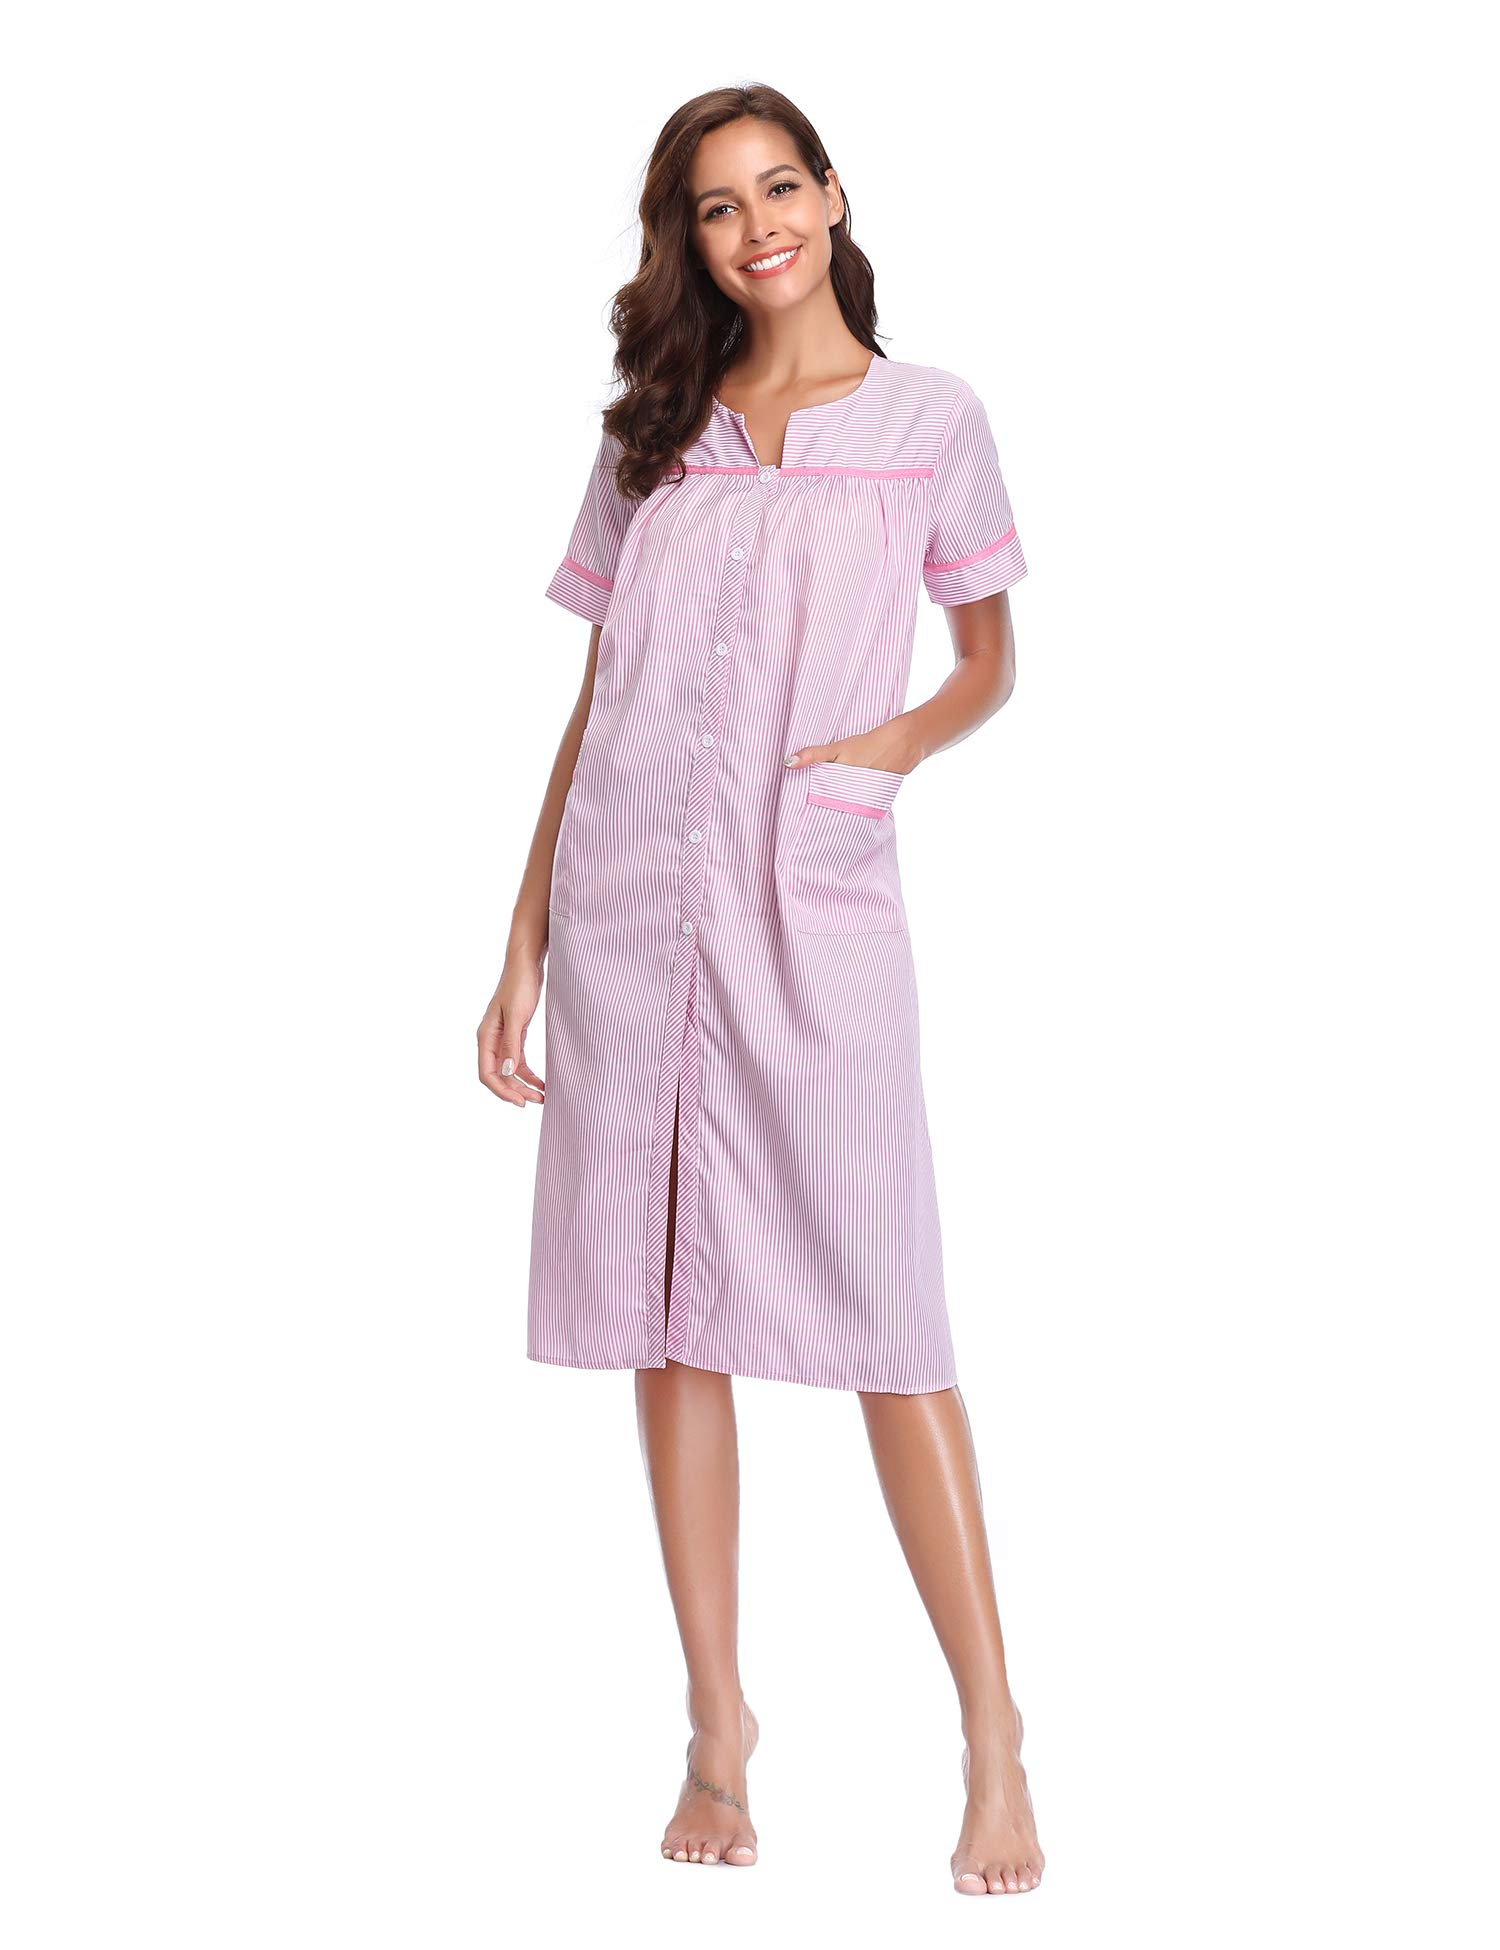 Lusofie House Coat Women Button Front Striped Sleepwear Long Cotton Nightgown (Pink, L)